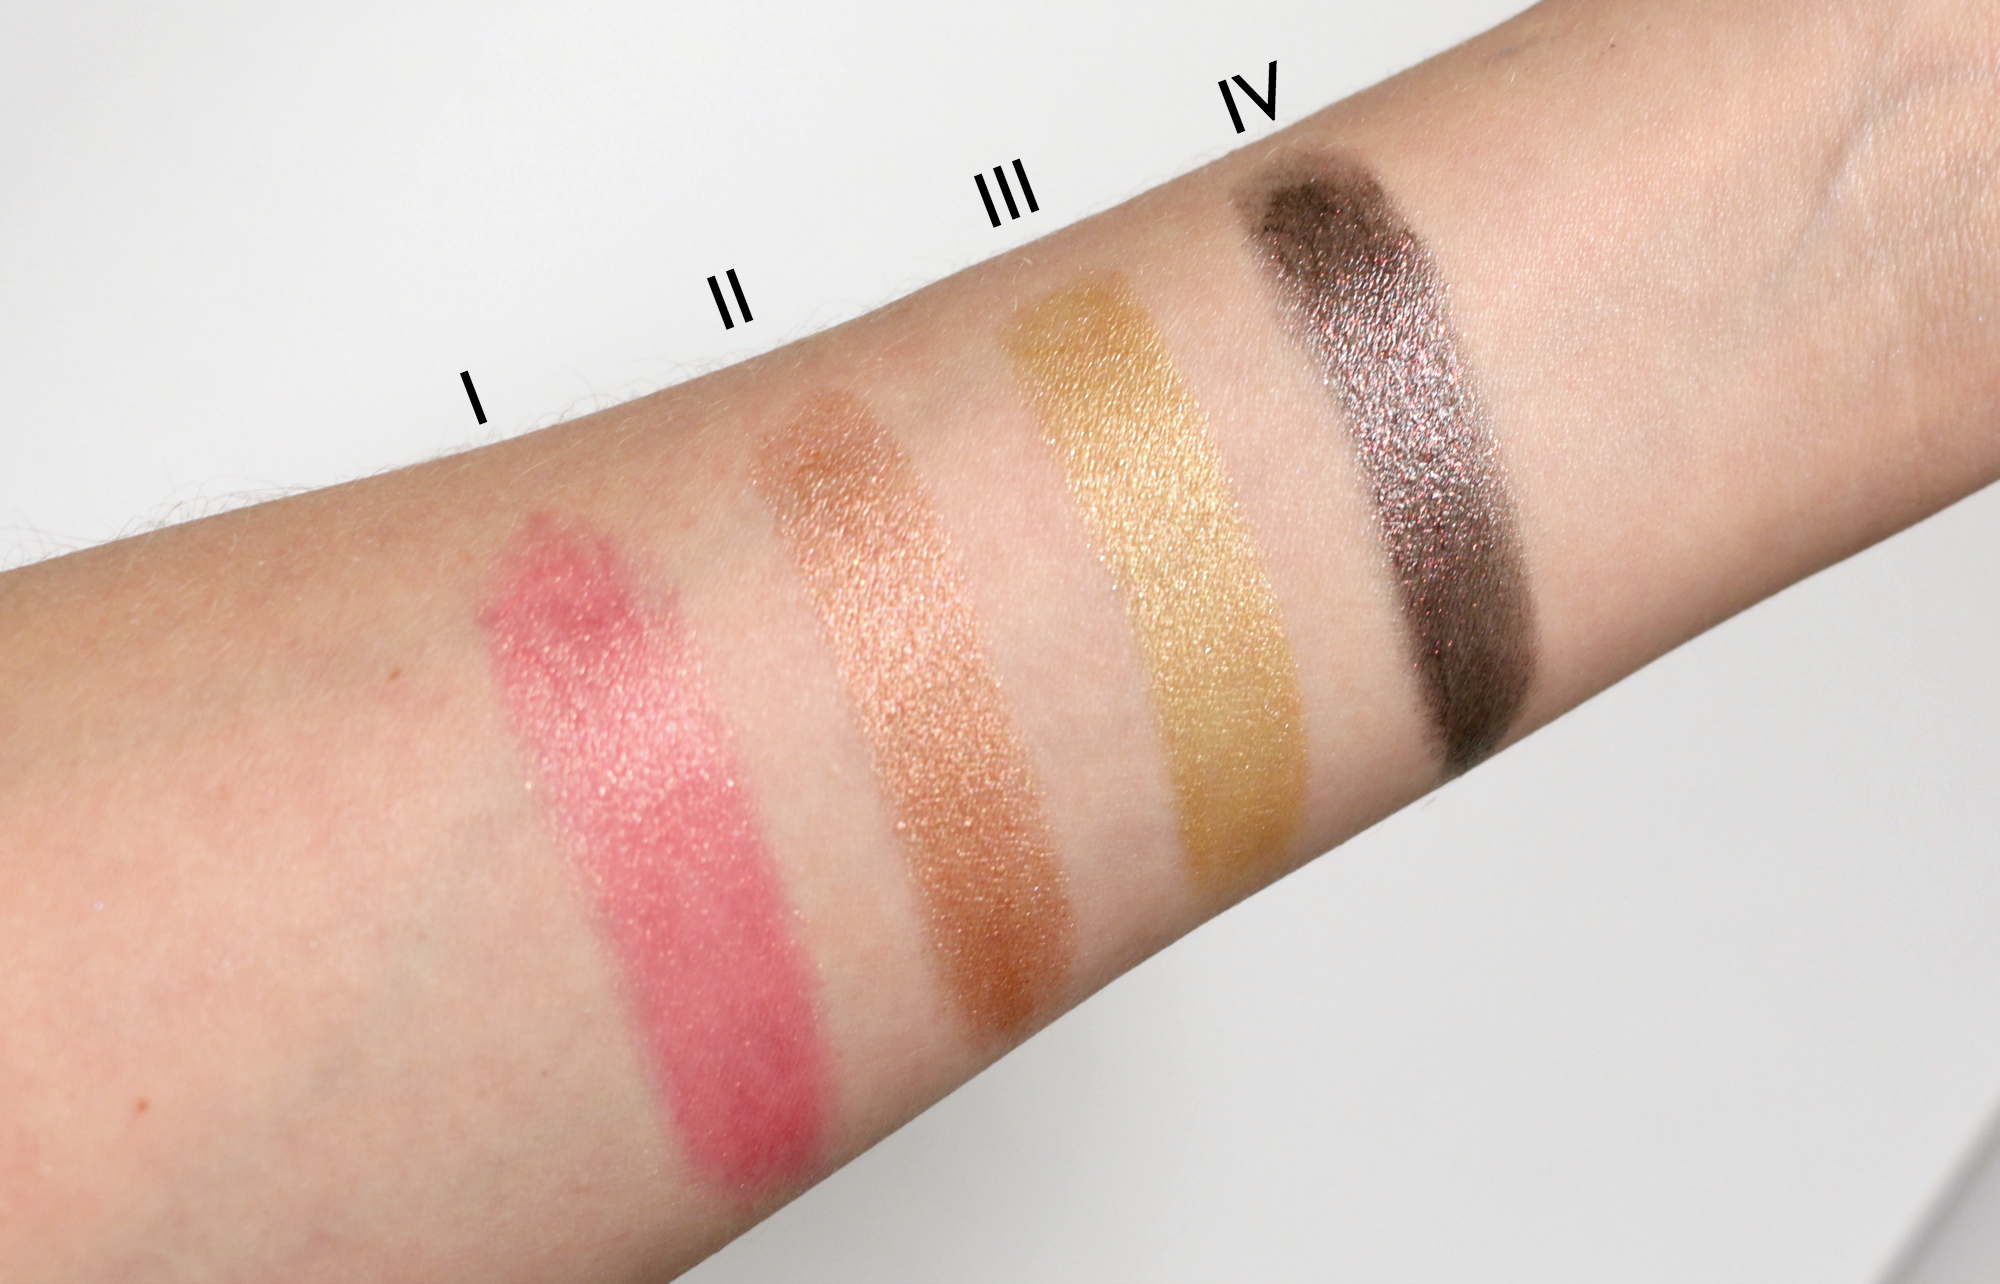 MAC Star Trek Collection. I: Where No Man Has Gone Before II: The Enemy Within III: LLAP IV: Kling-It-On http://www.revelist.com/makeup/mac-star-trek-swatches/3678/And here are the swatches./14/#/14